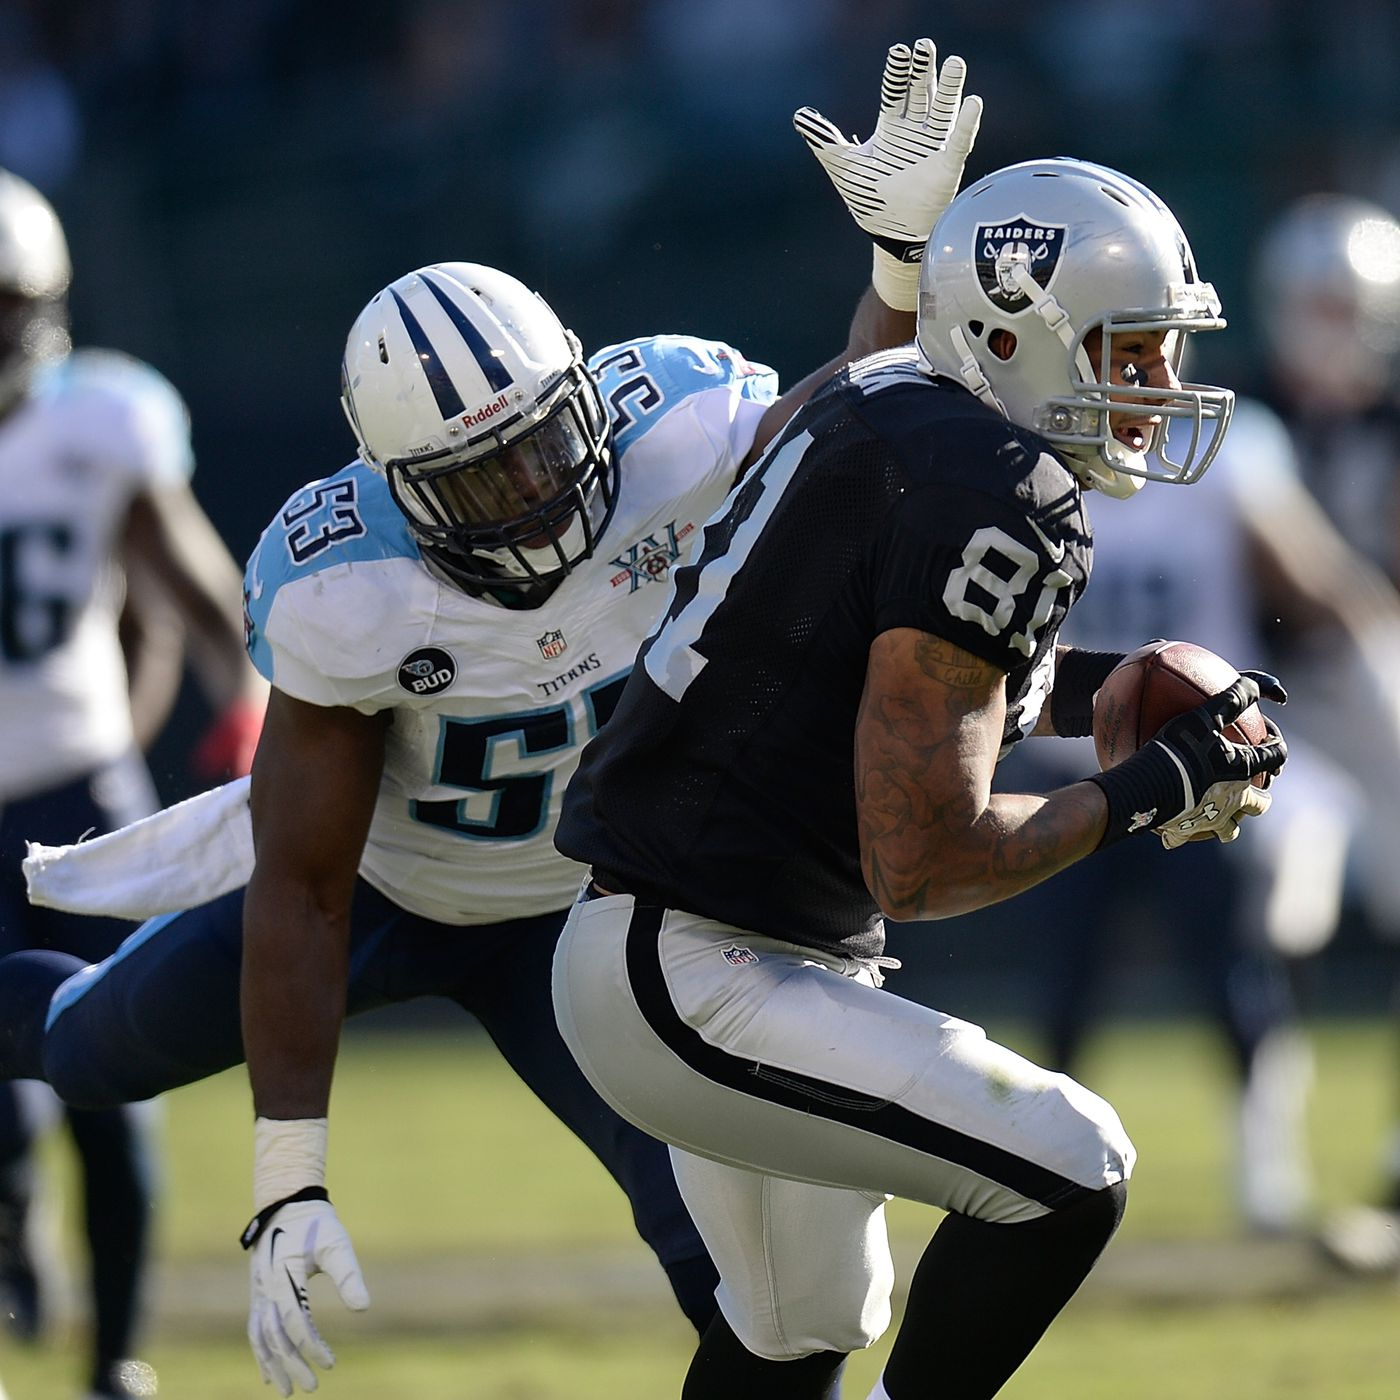 Titans Vs Raiders 2016 Online Streaming Game Time Tv Schedule